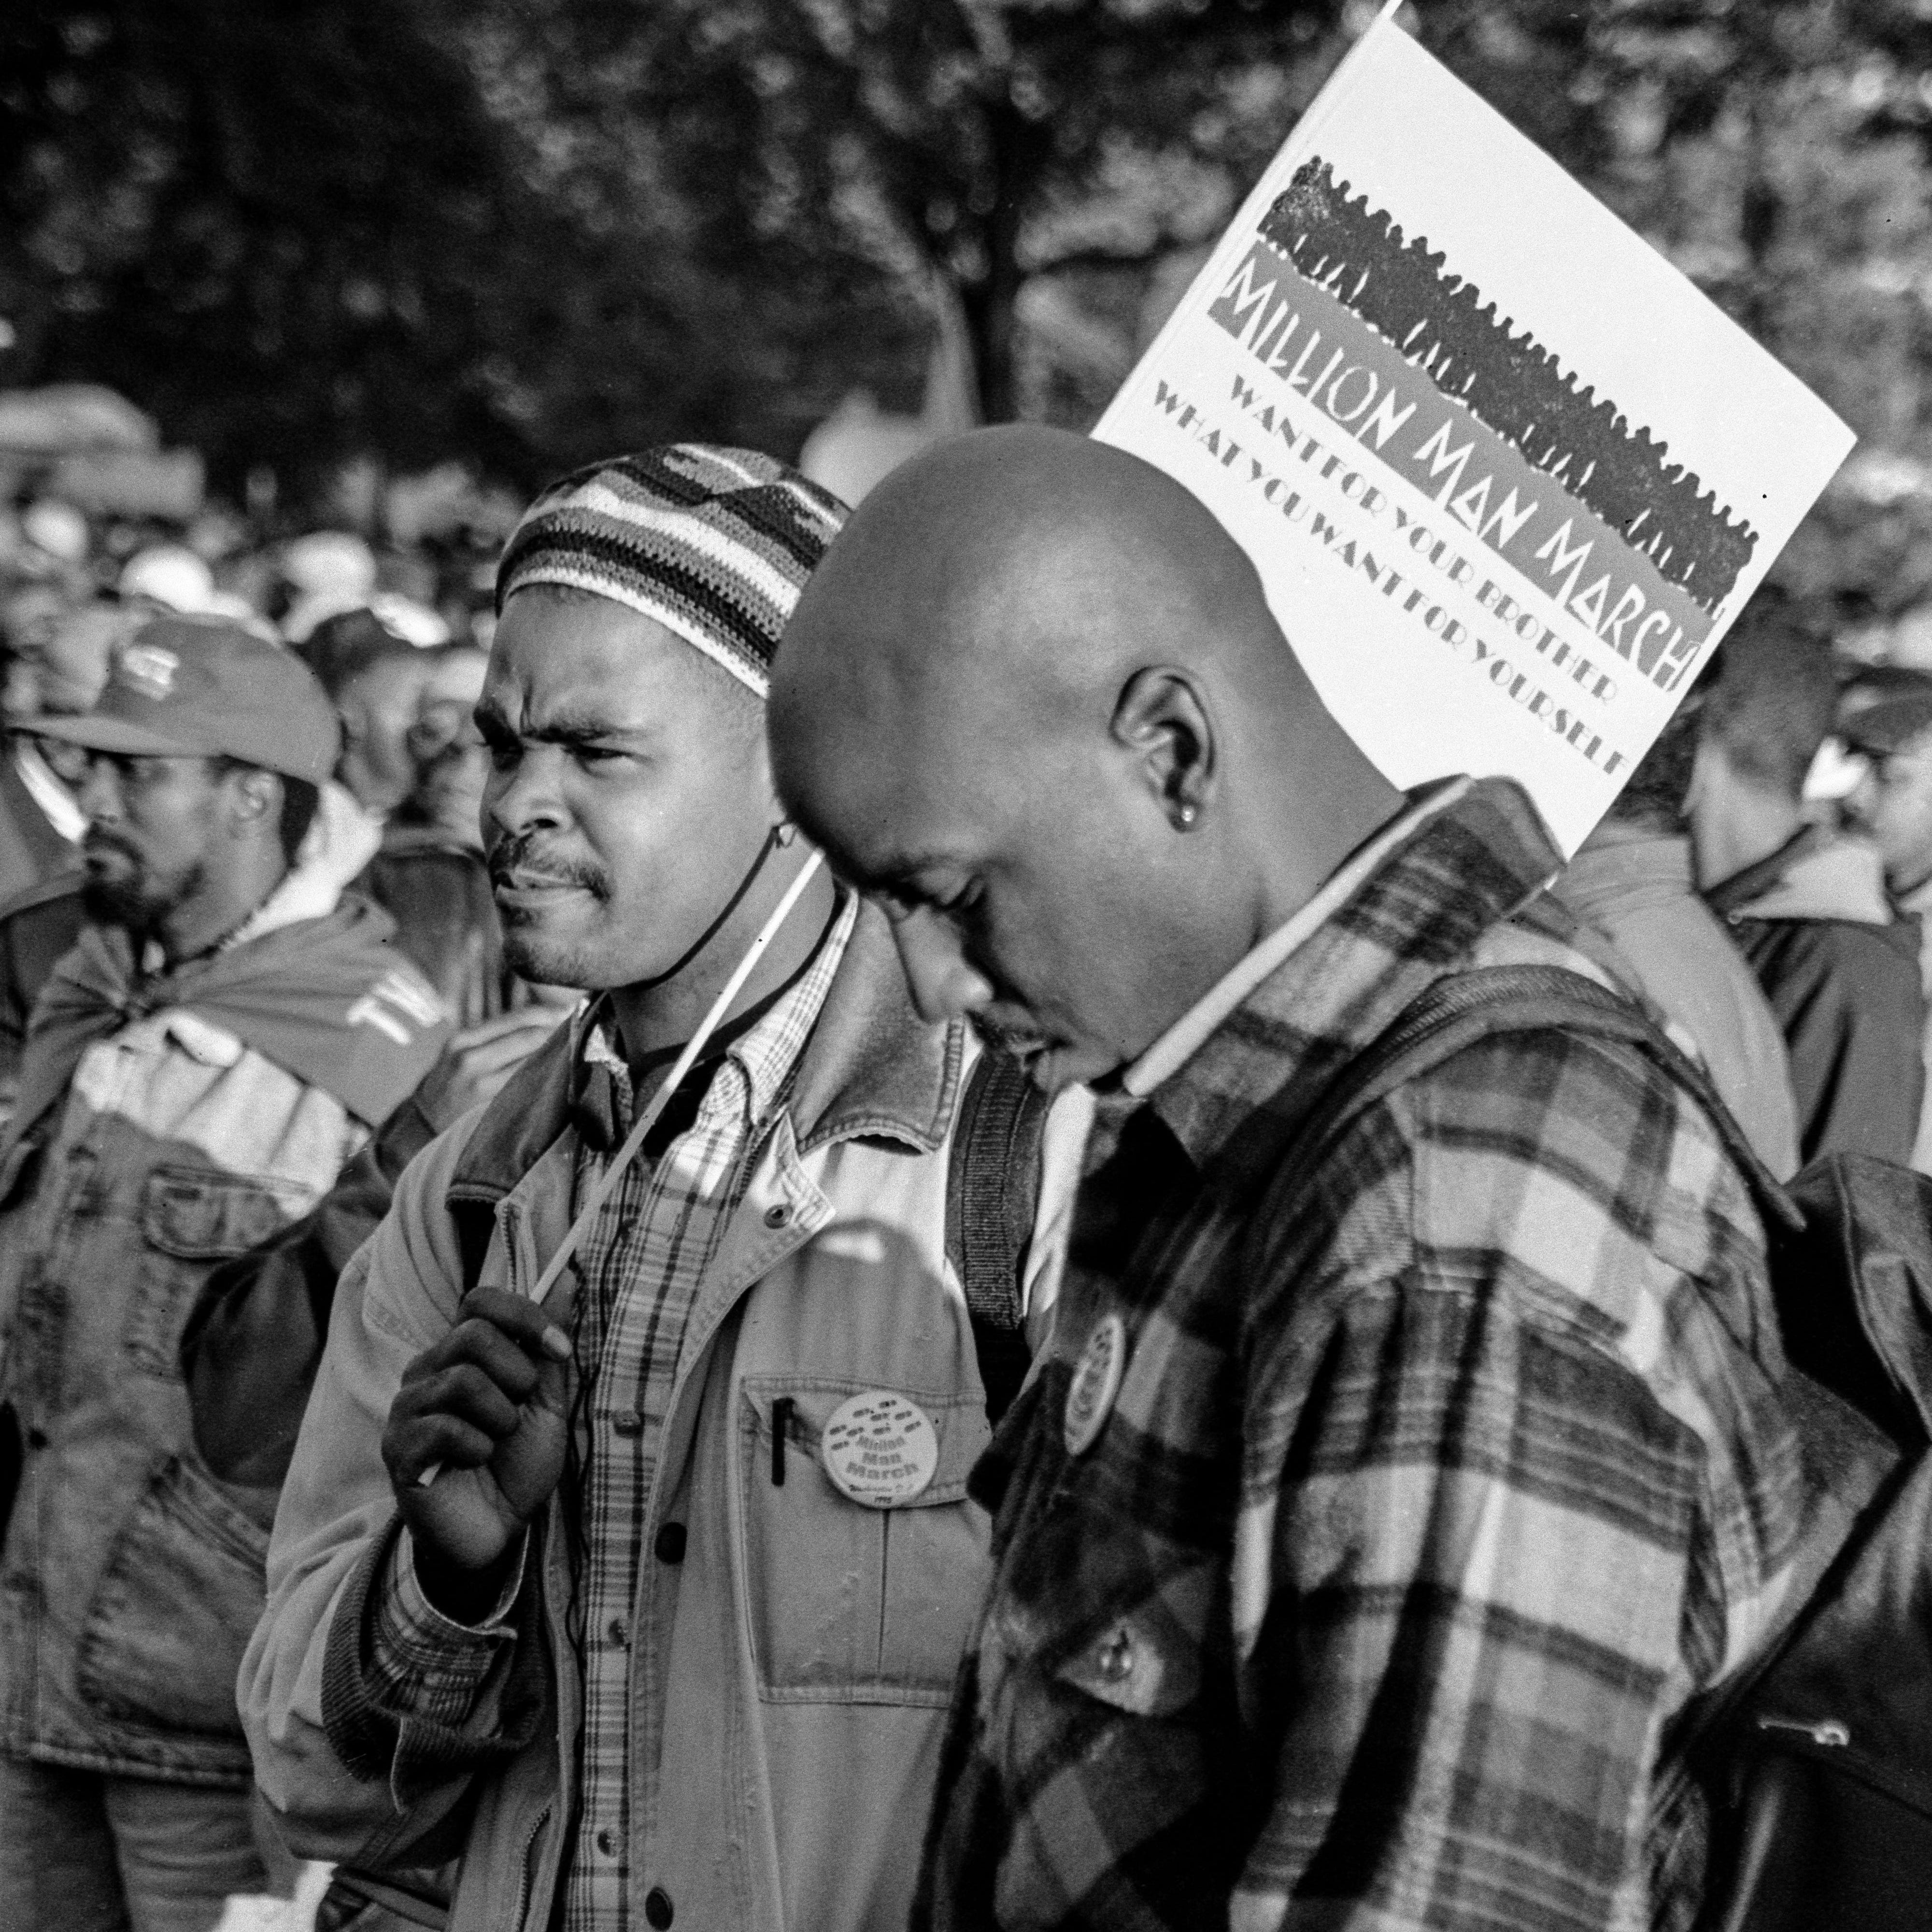 A man at the 1995 Million Man March in Washington, D.C., bows his head while others look on during an event that was billed as 'A Day of Atonement.'